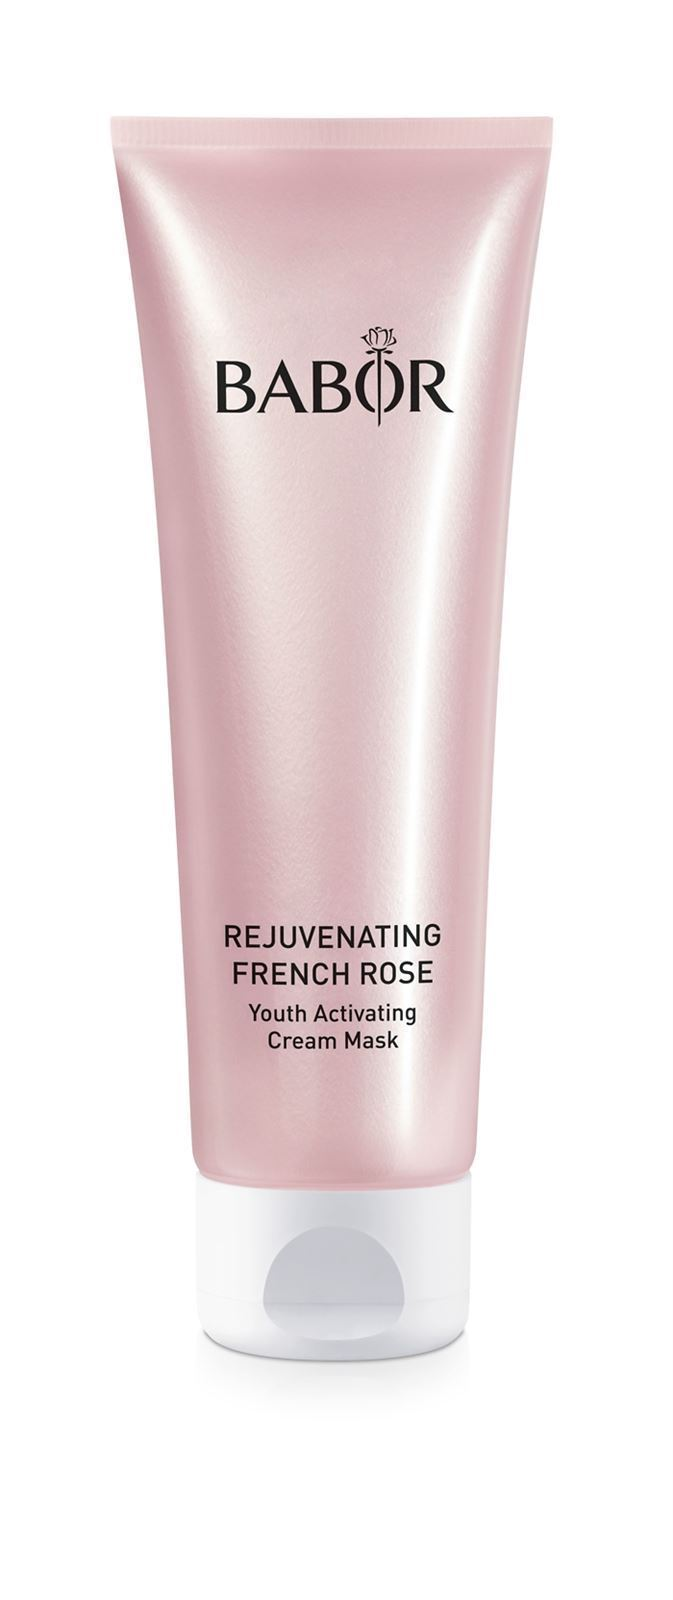 BABOR REJUVENATING FRENCH ROSE YOUTH ACTIVATING CREAM MASK - Imagen 1